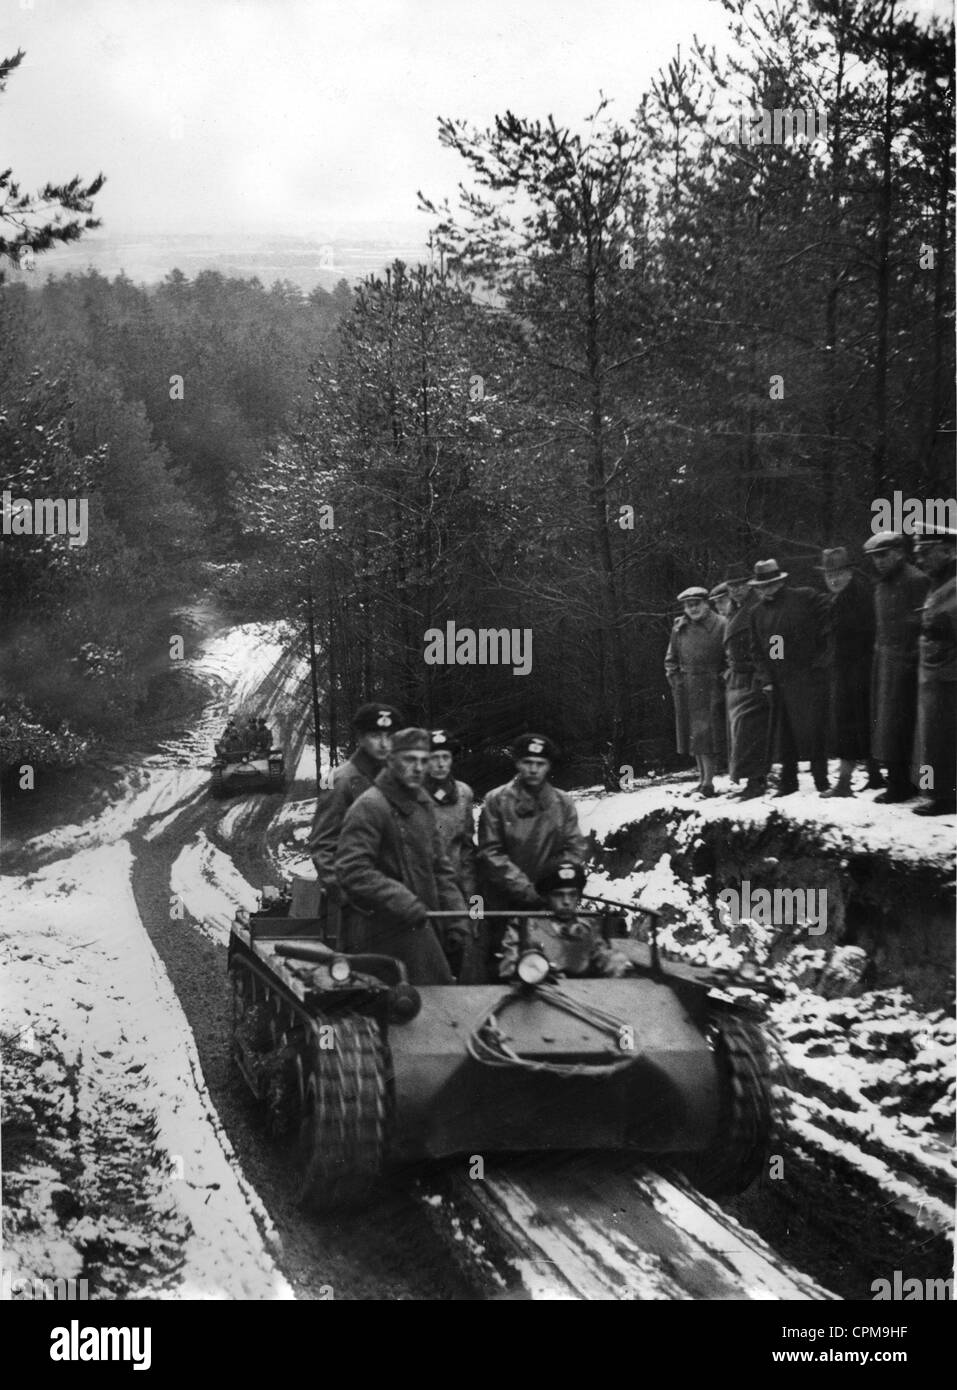 Demonstration of a driving school version of a Panzer I, 1935 - Stock Image